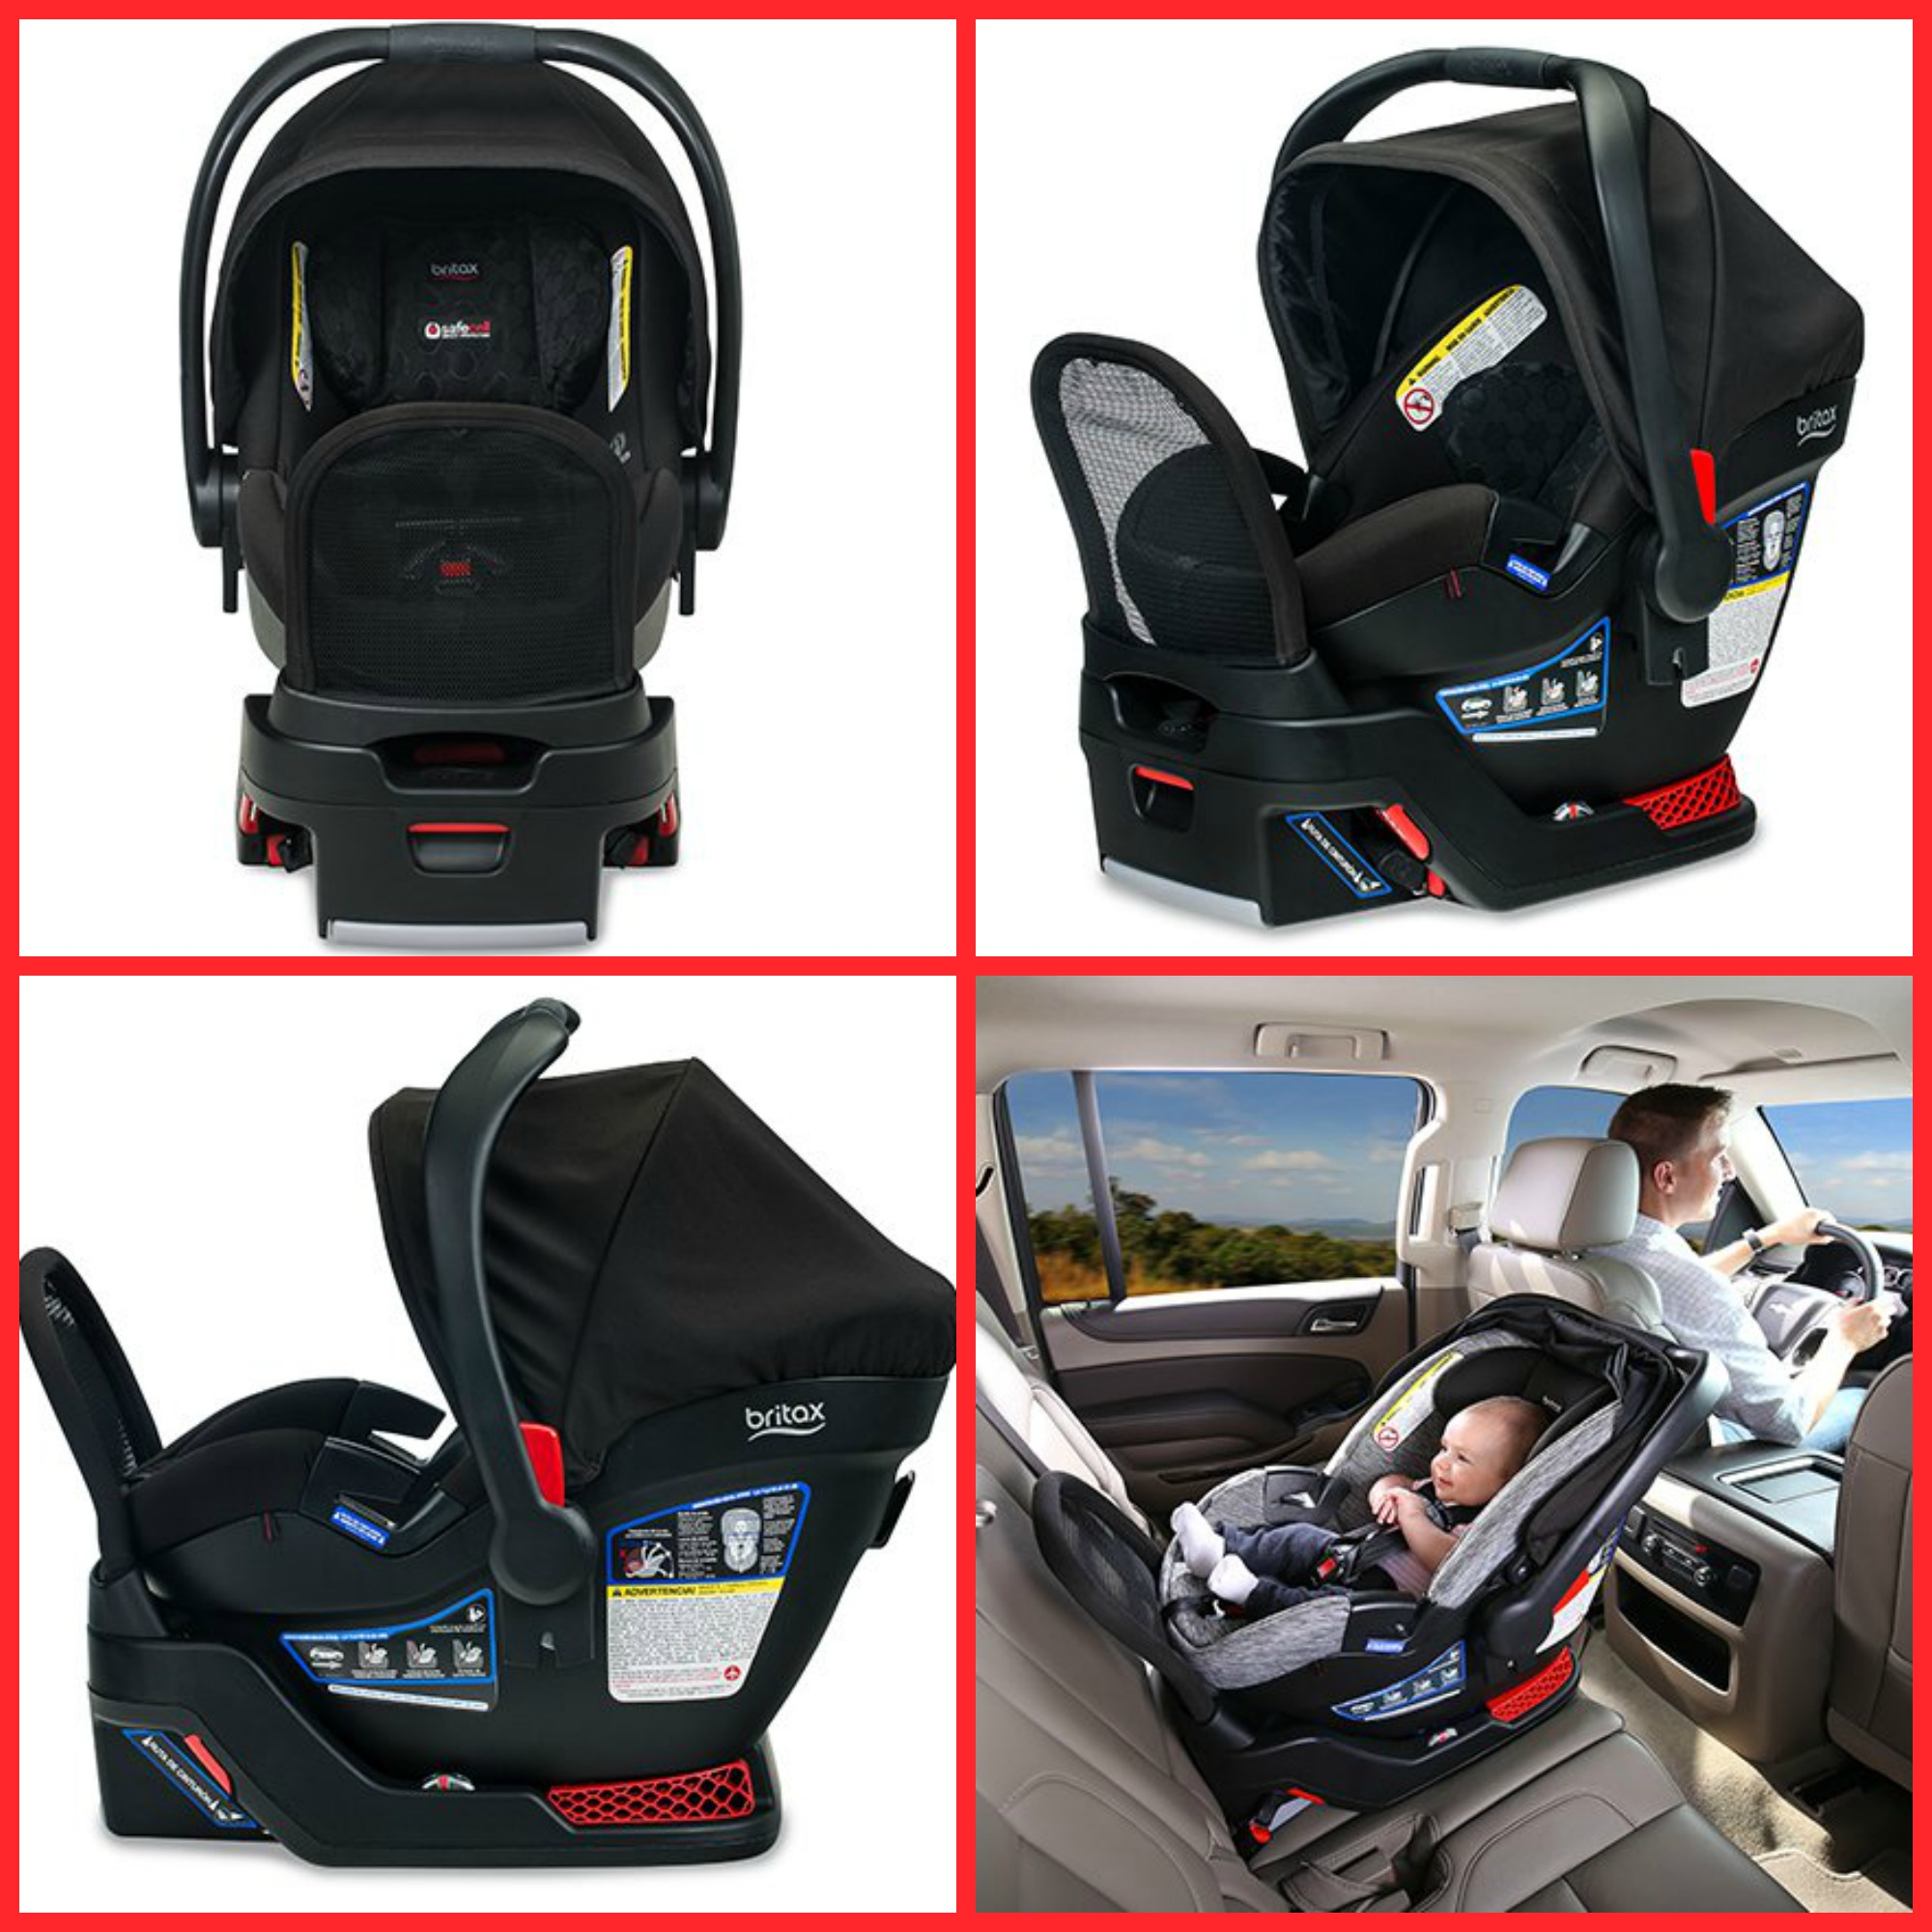 Review Of The Britax Endeavours Car Seat